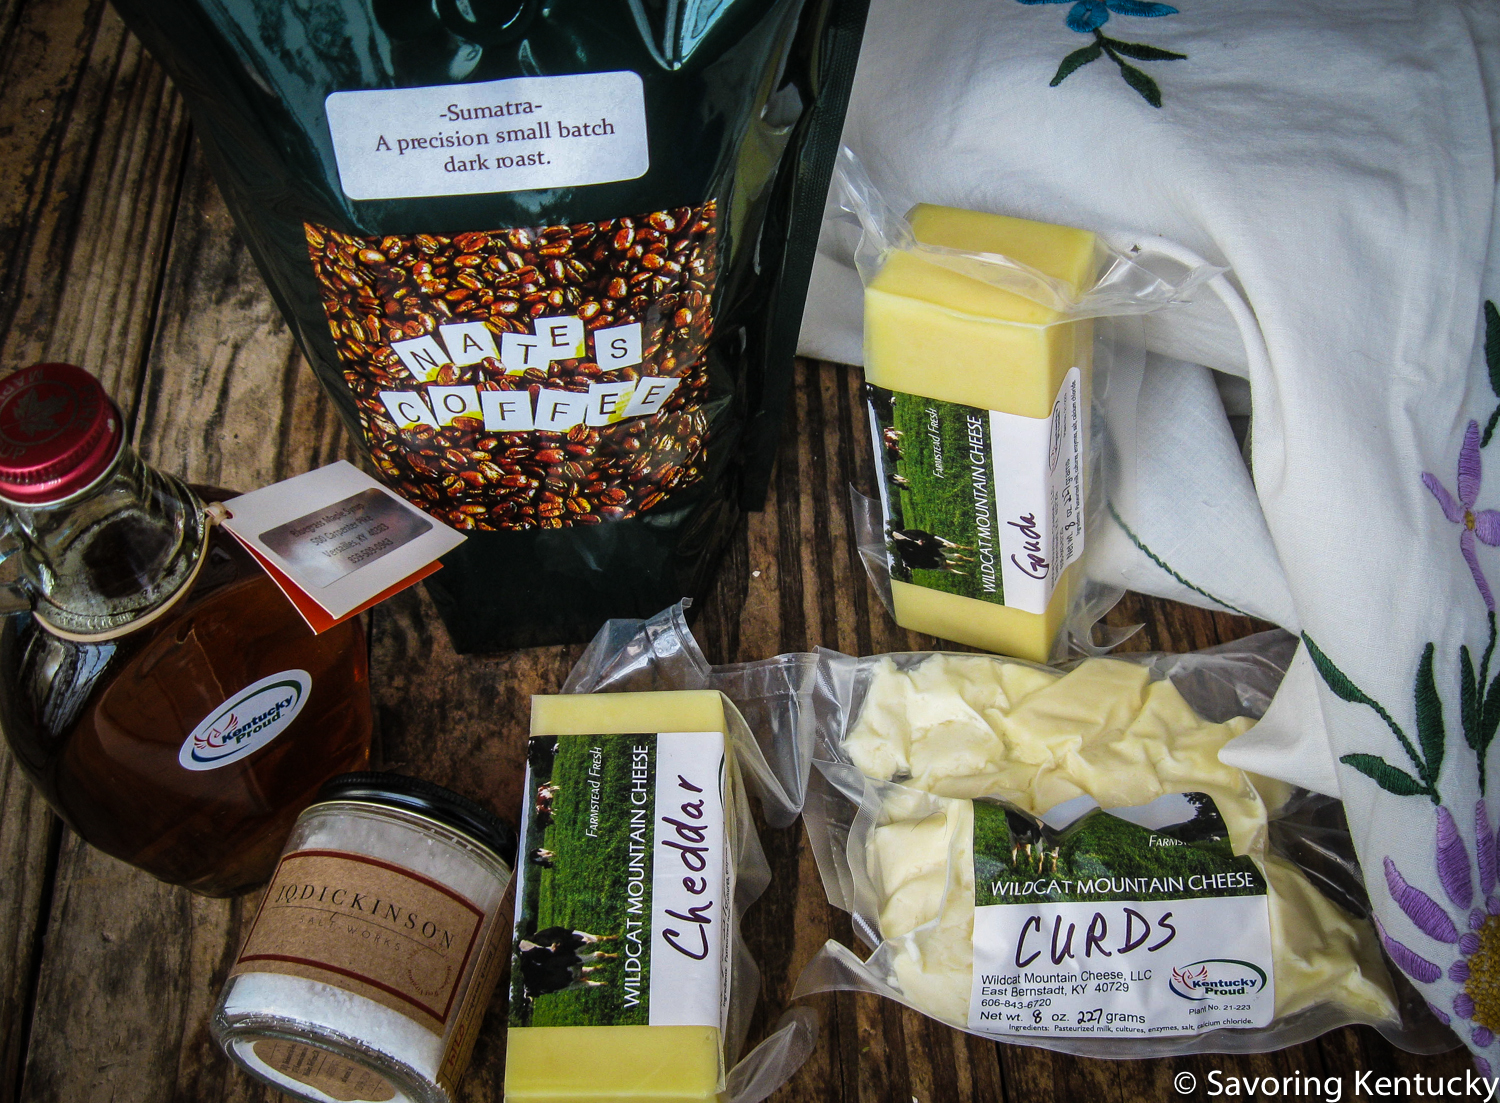 Country Rock maple syrup,  Nate's Coffee  (Sumatra),  Wildcat Mountain cheeses  from East Bernstadt, Kentucky, and  J. Q. Dickinson salt  from Malden, West Virginia